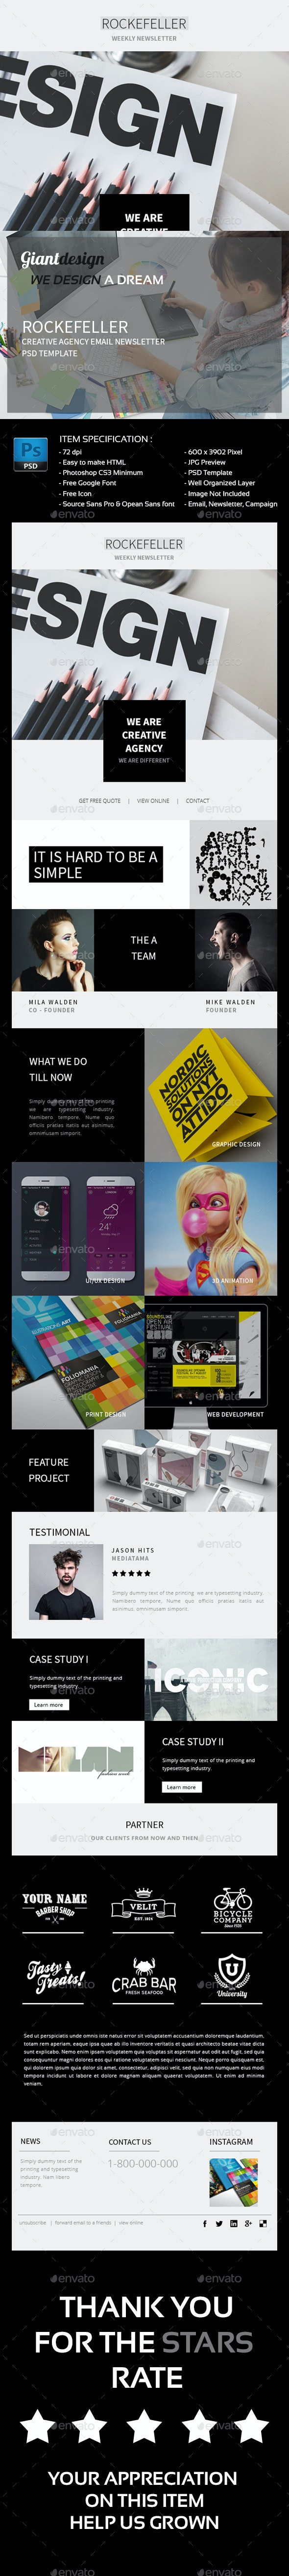 Rockefeller - Creative Agency Email PSD - E-newsletters Web Elements